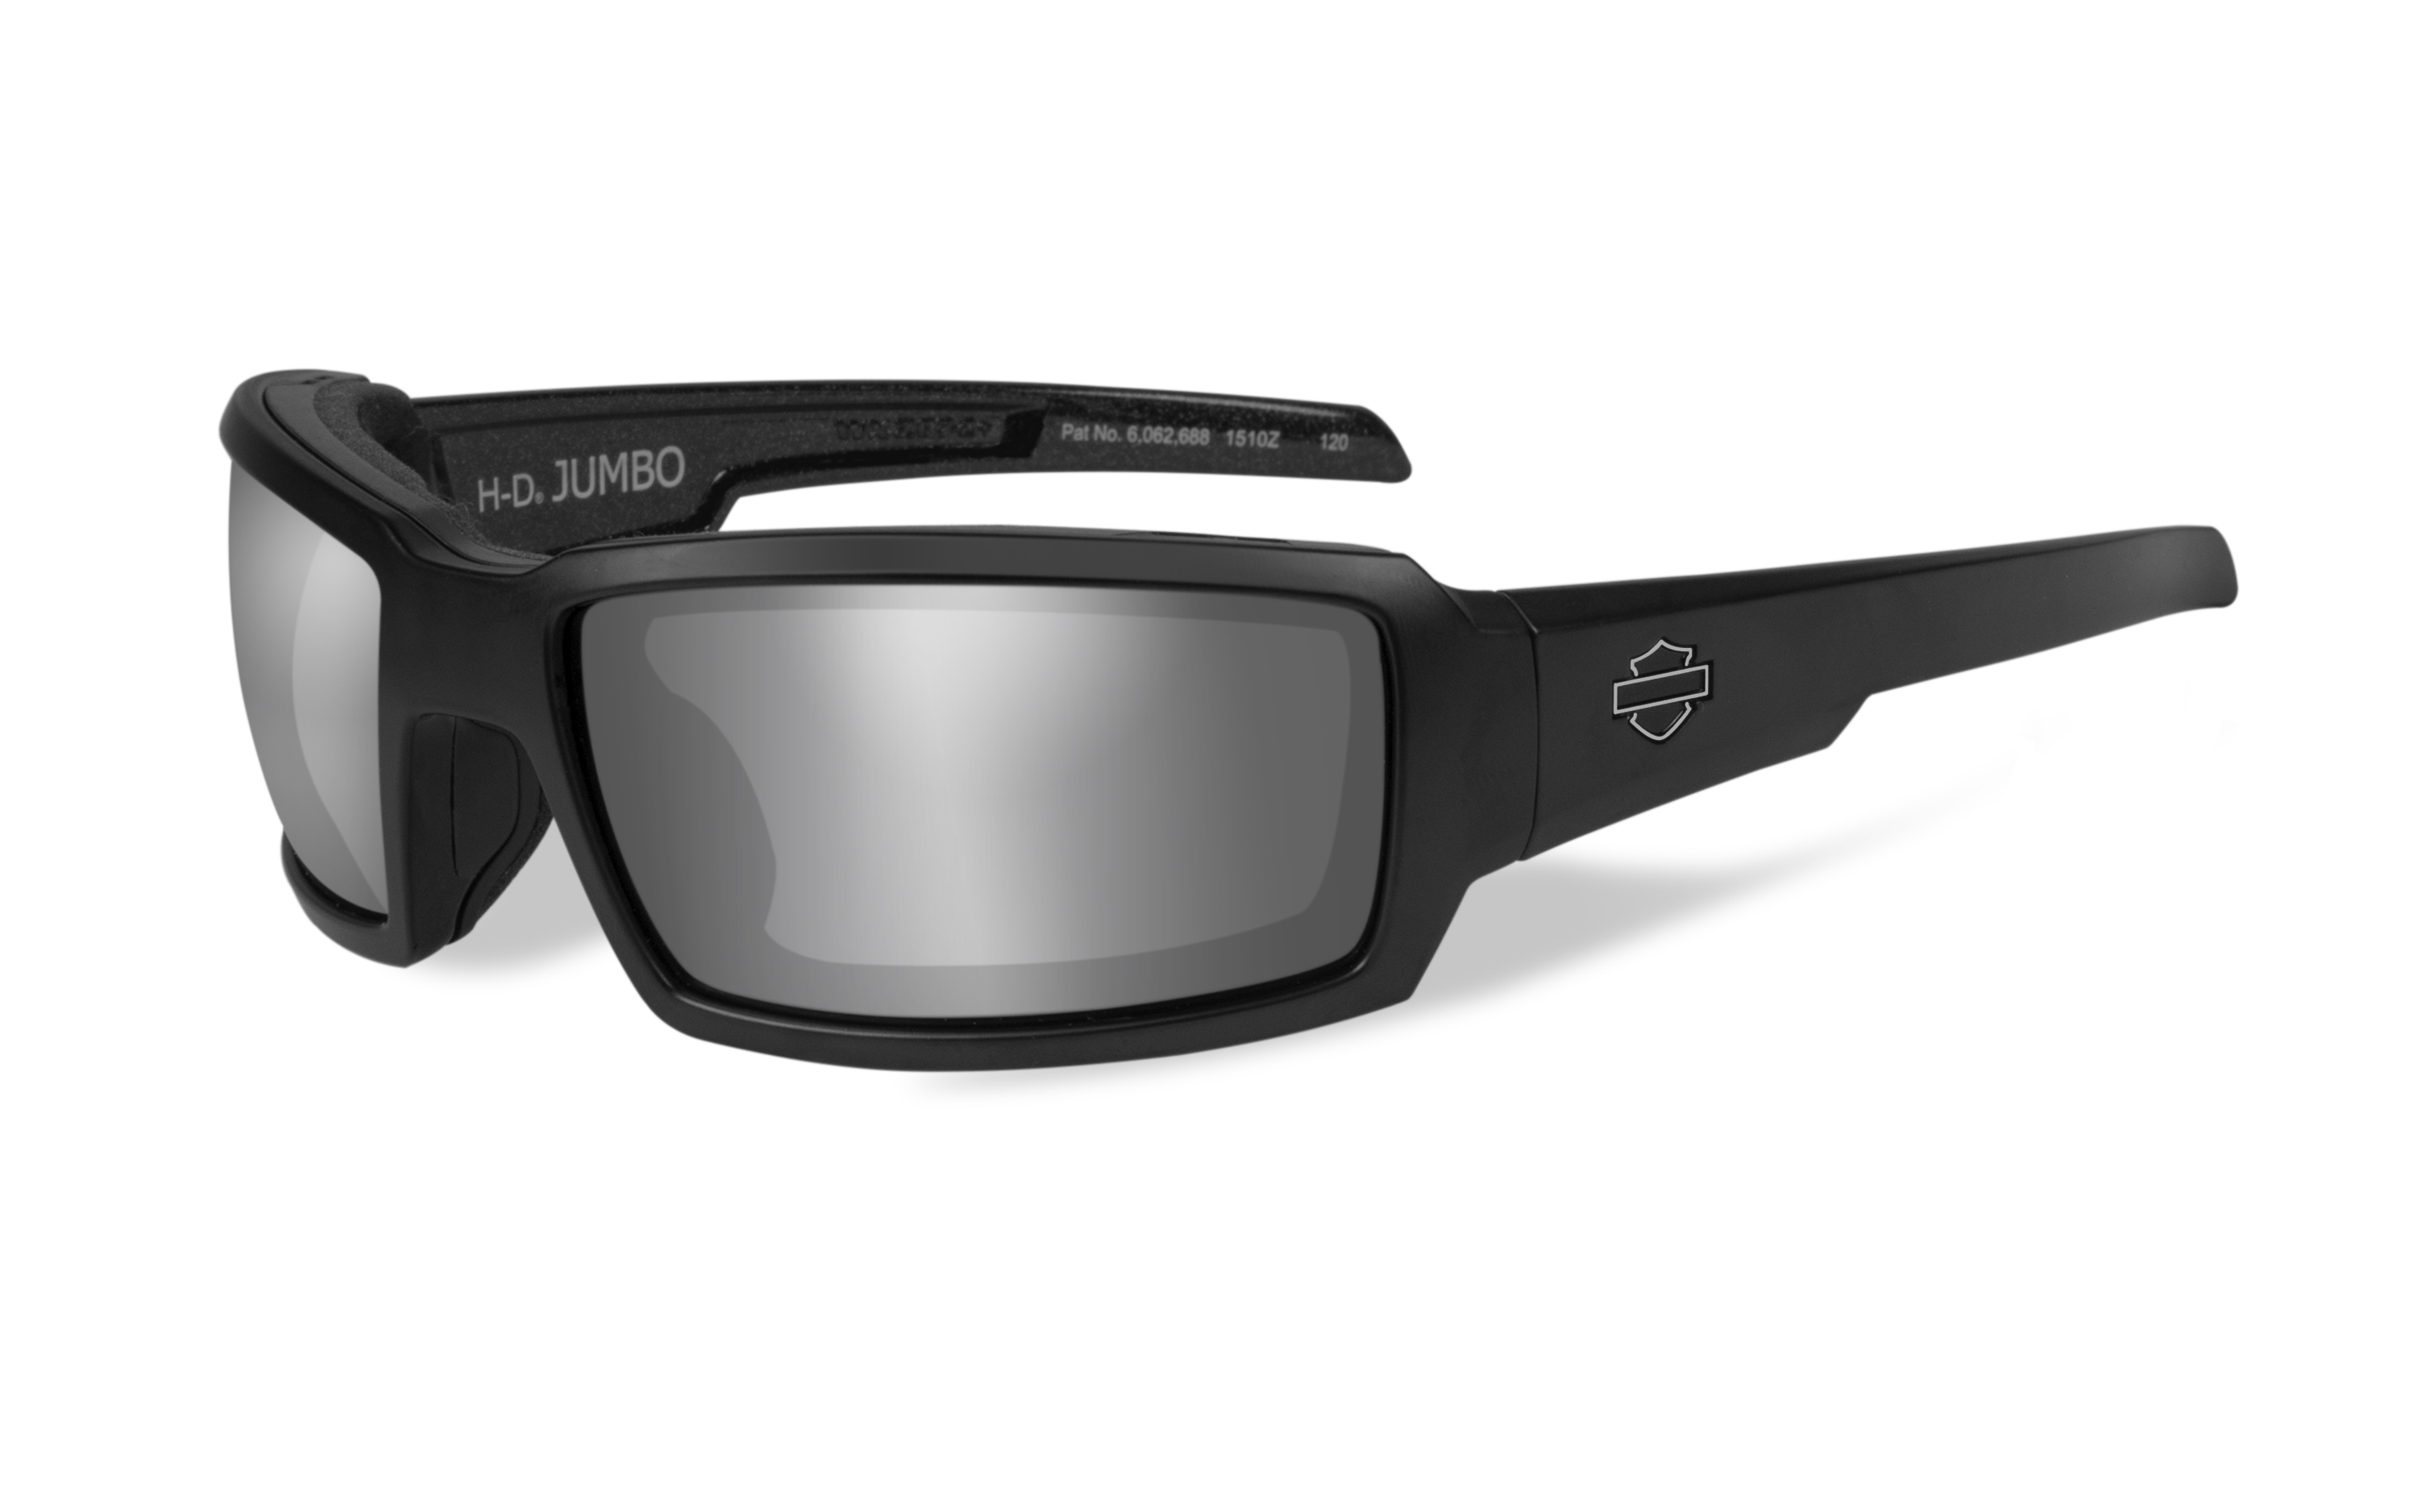 95175d6a54 Harley-Davidson® Wiley-X® Jumbo Sunglasses with Silver Flash Lens ...